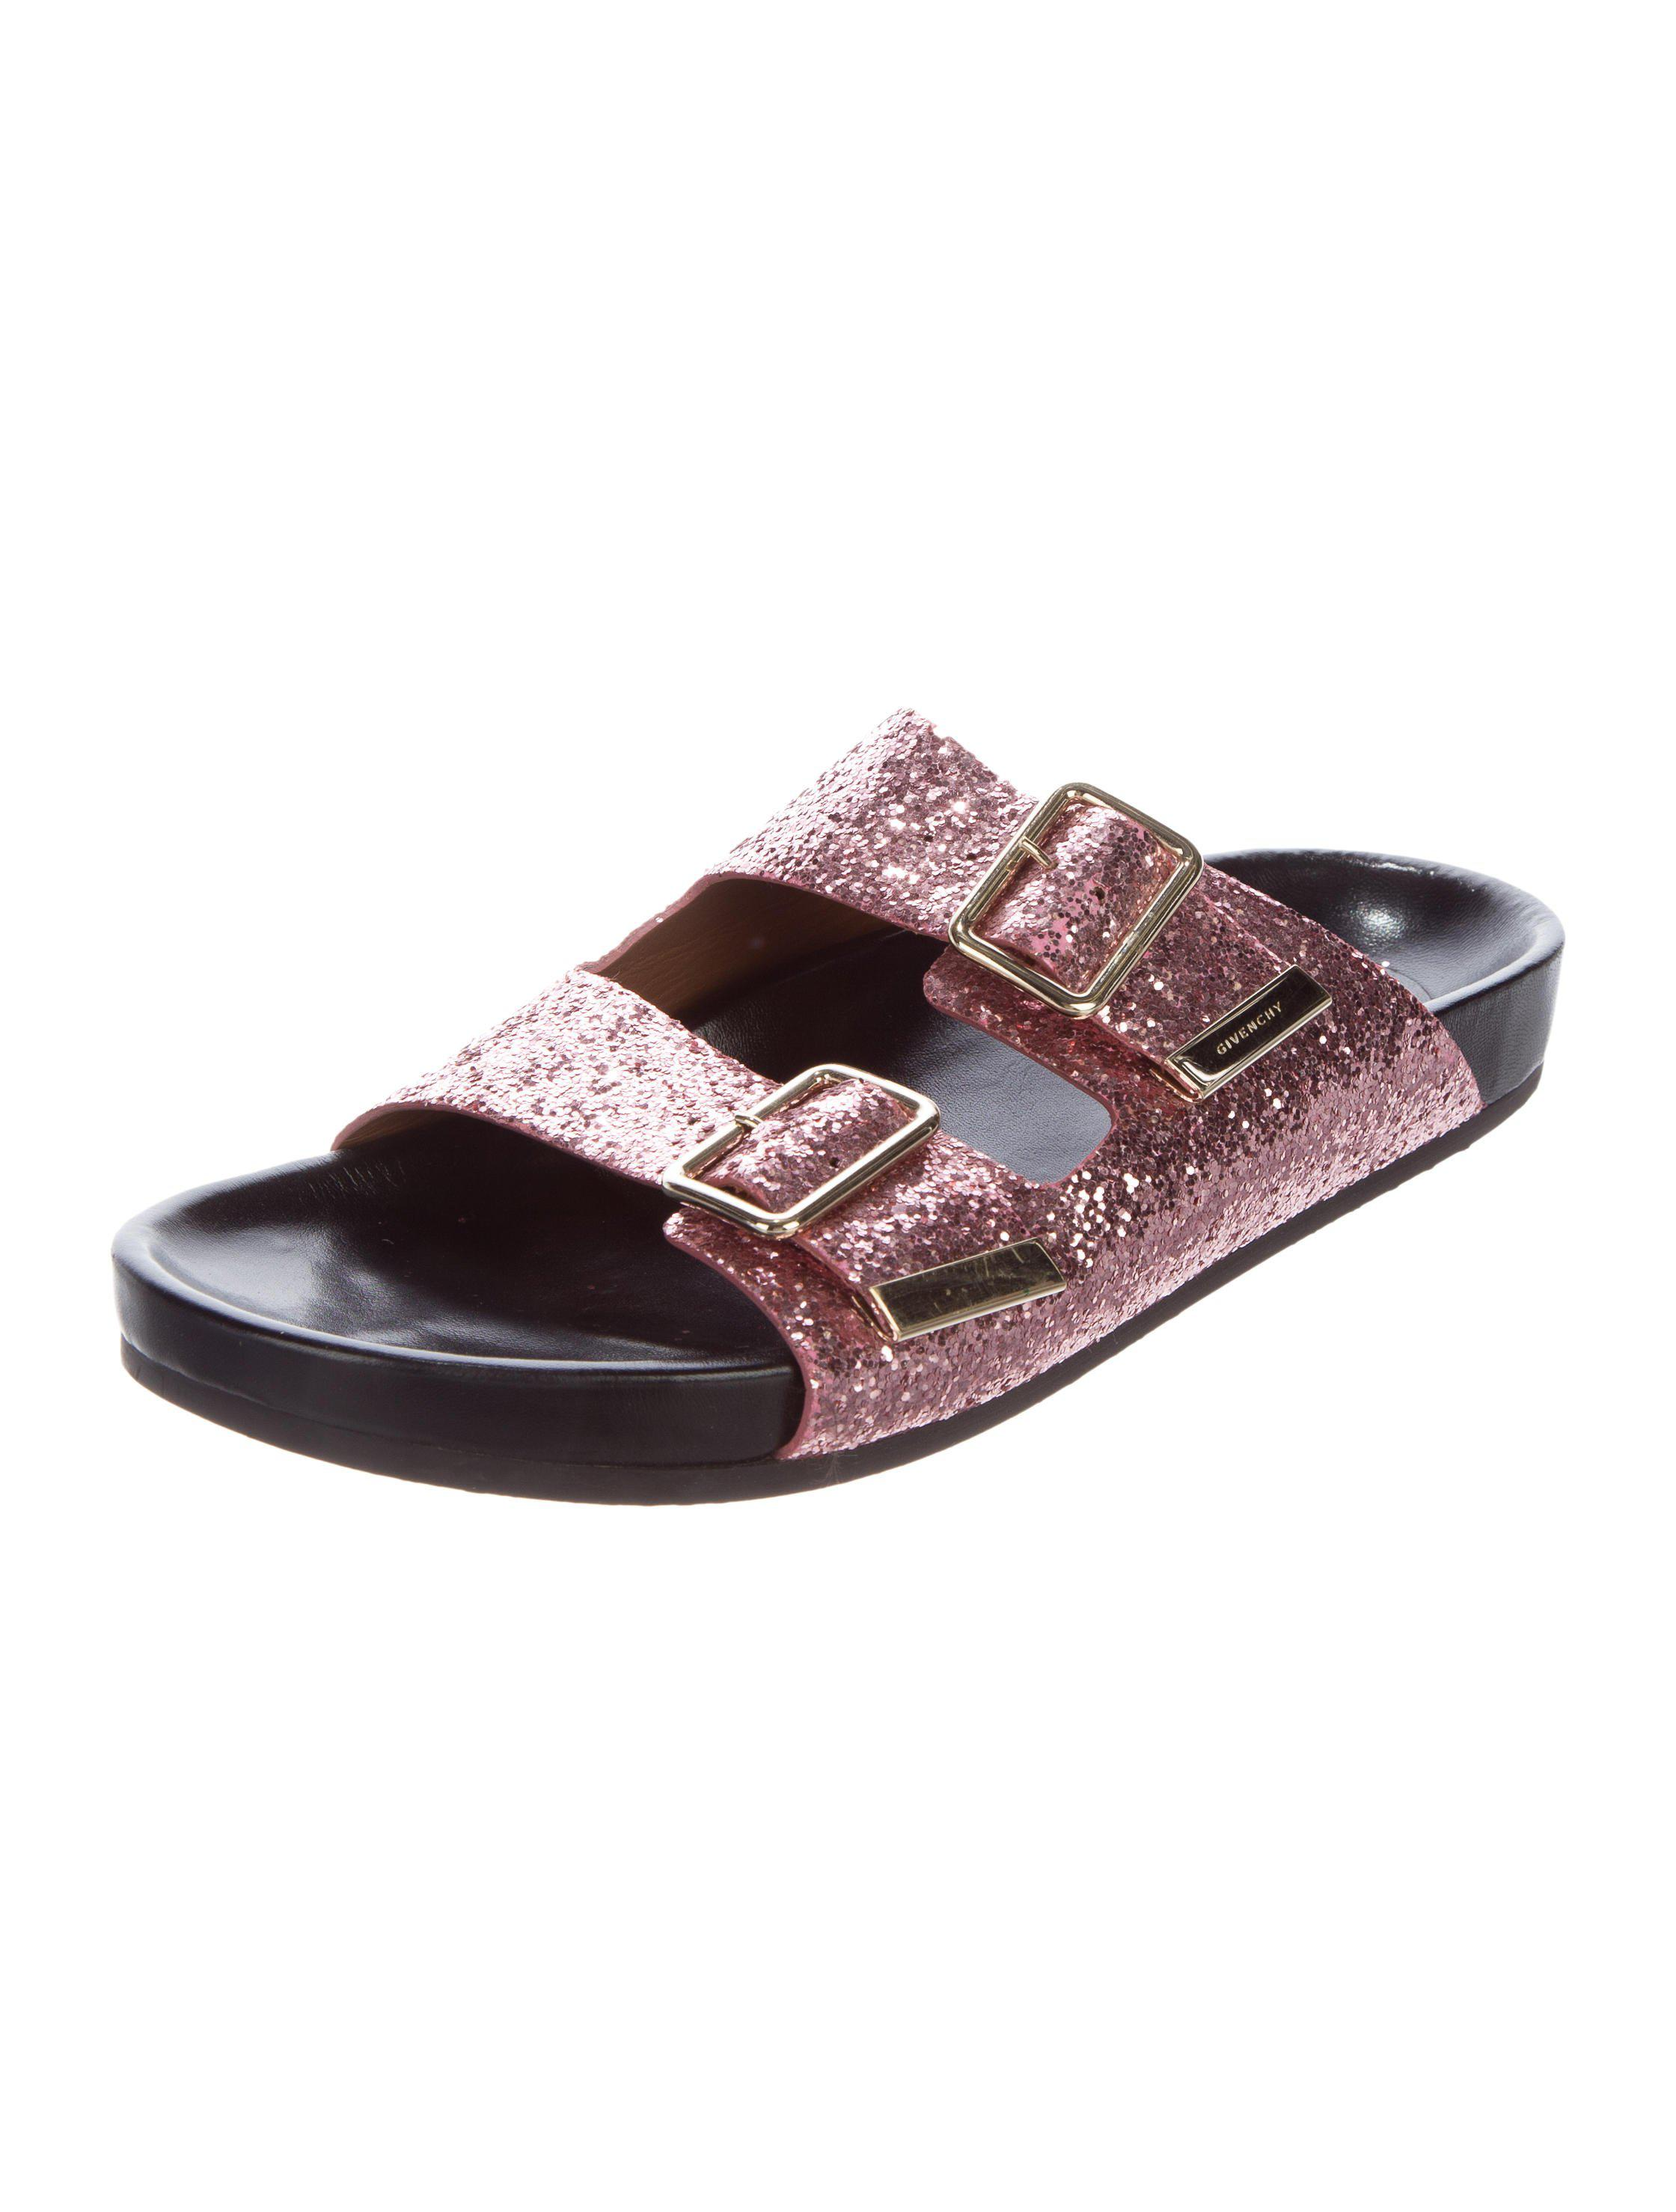 free shipping official site cheap price wholesale Givenchy Glitter Slide Sandals cheap sale under $60 discount visa payment outlet where can you find rJLMyac